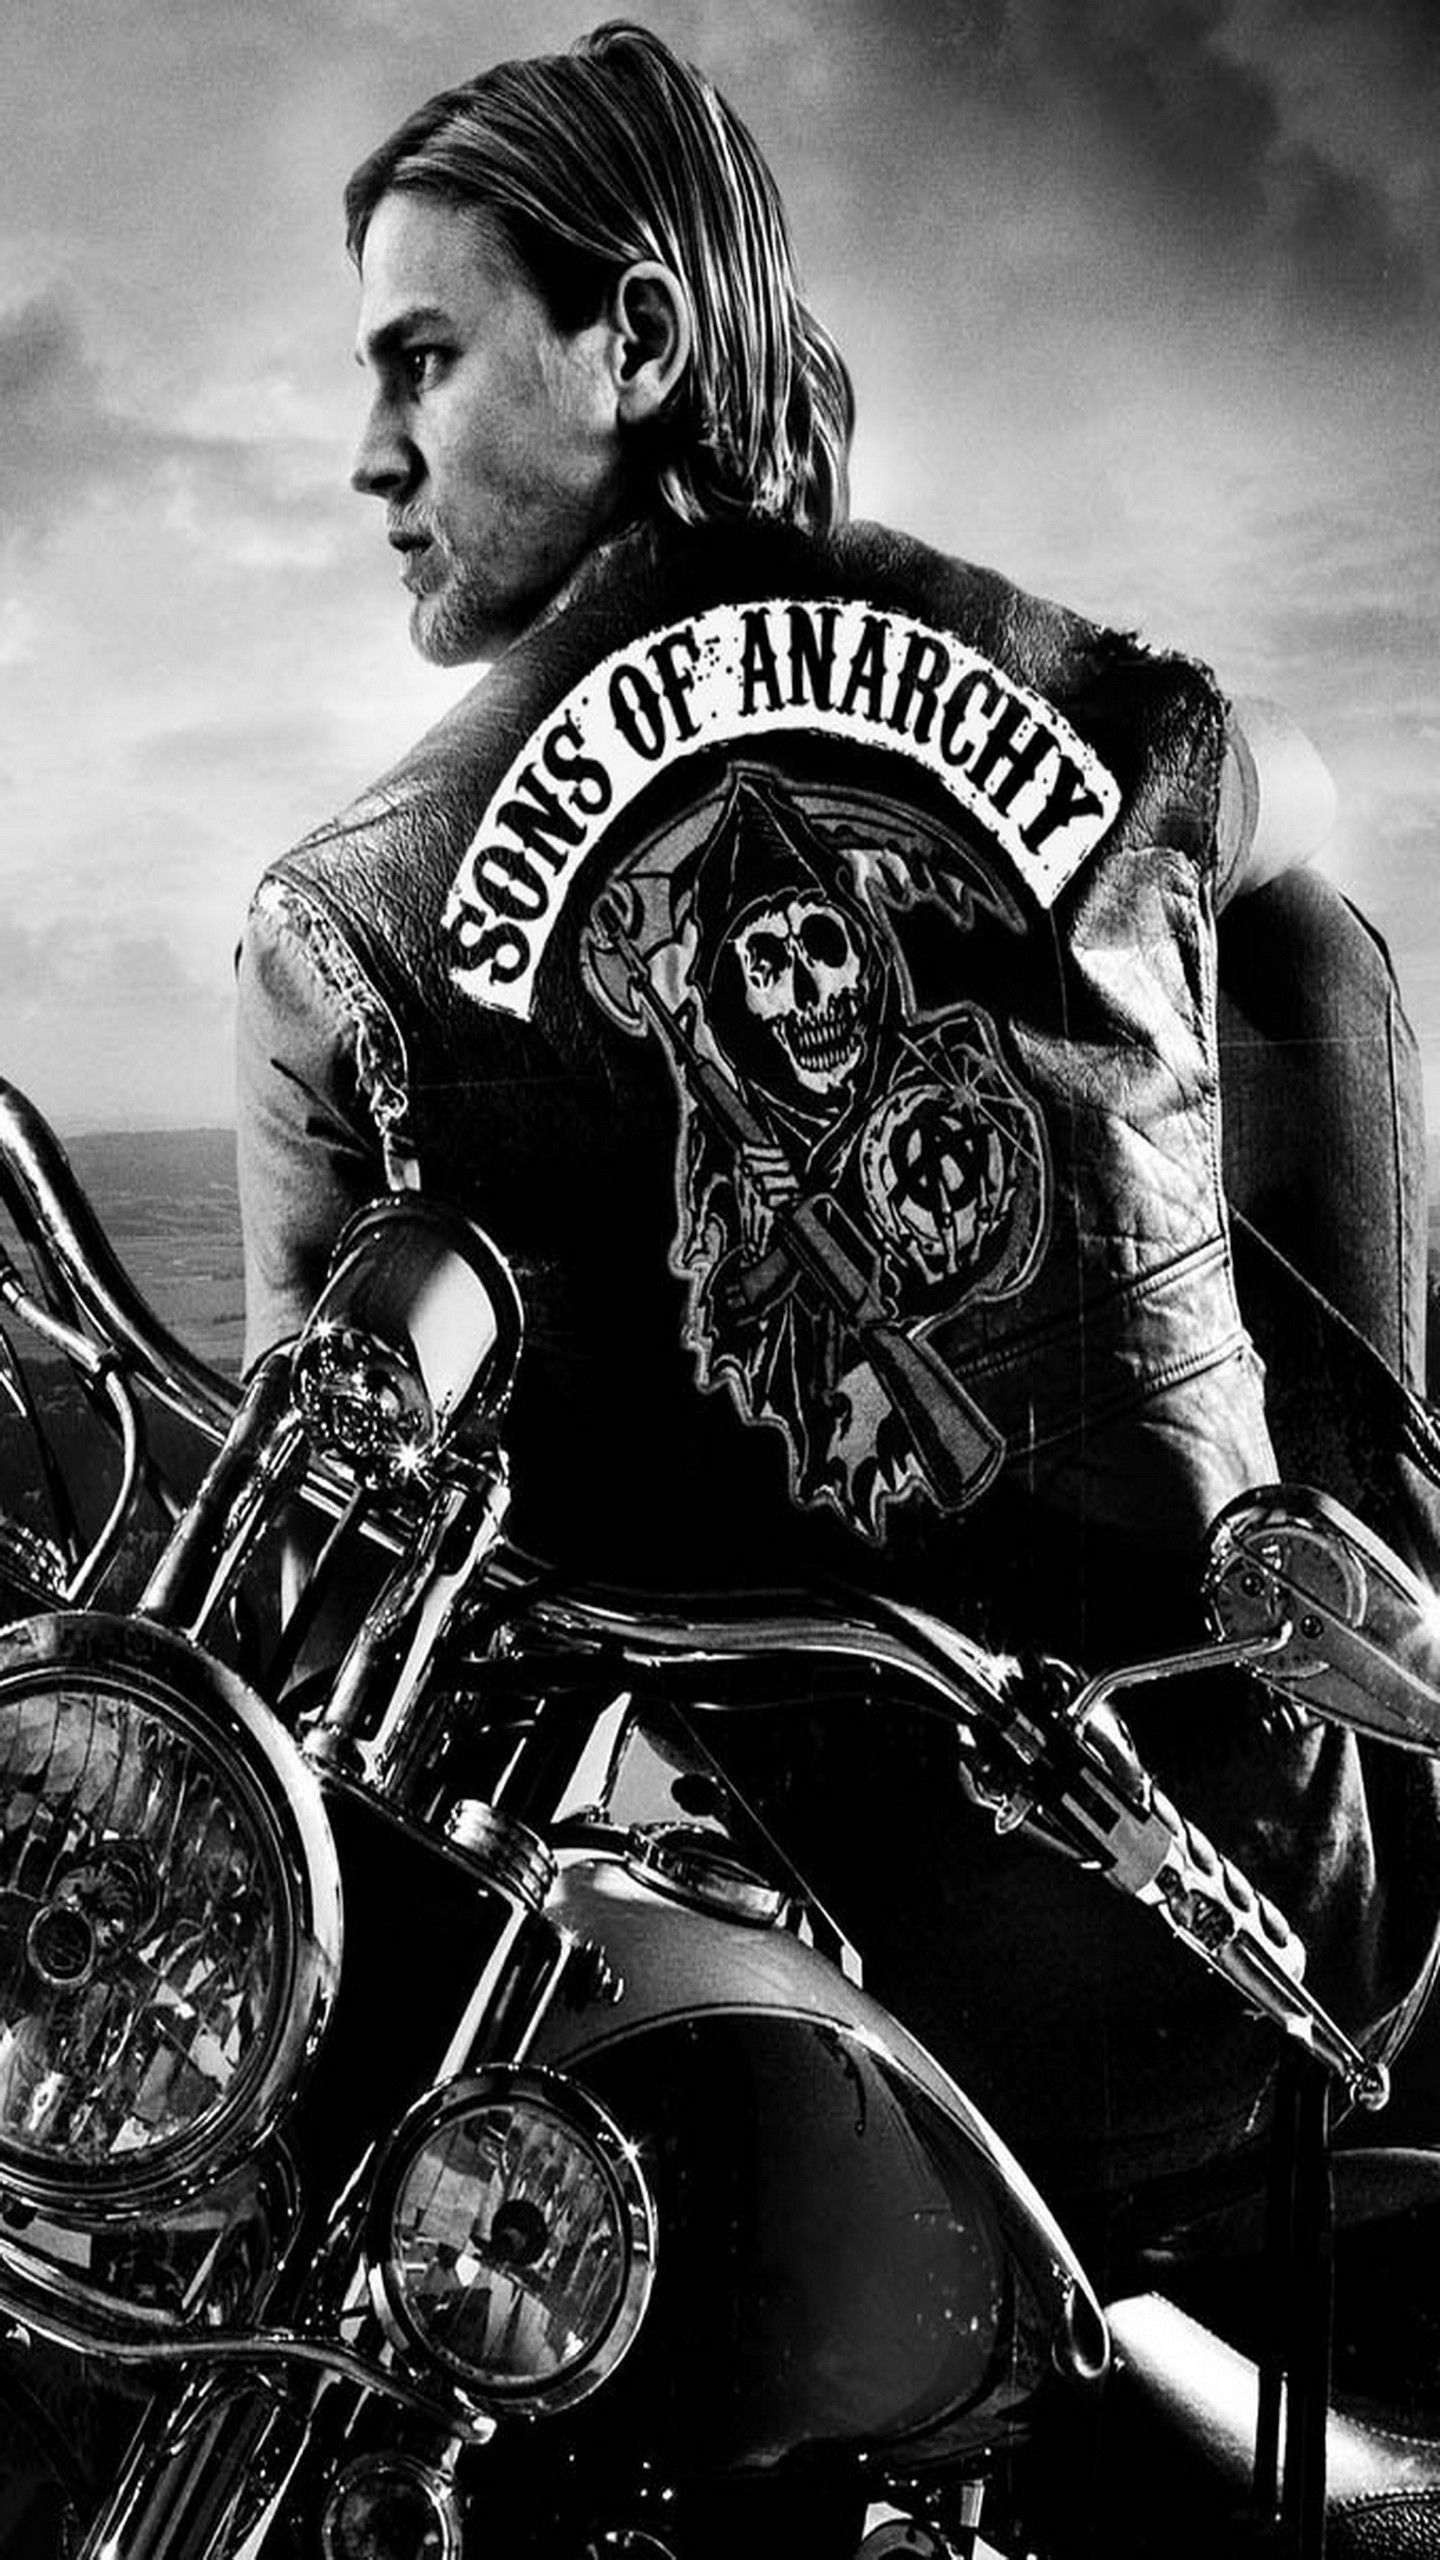 Sons Of Anarchy Wallpaper Iphone 70 Images ฮาเลย เดว ดส น